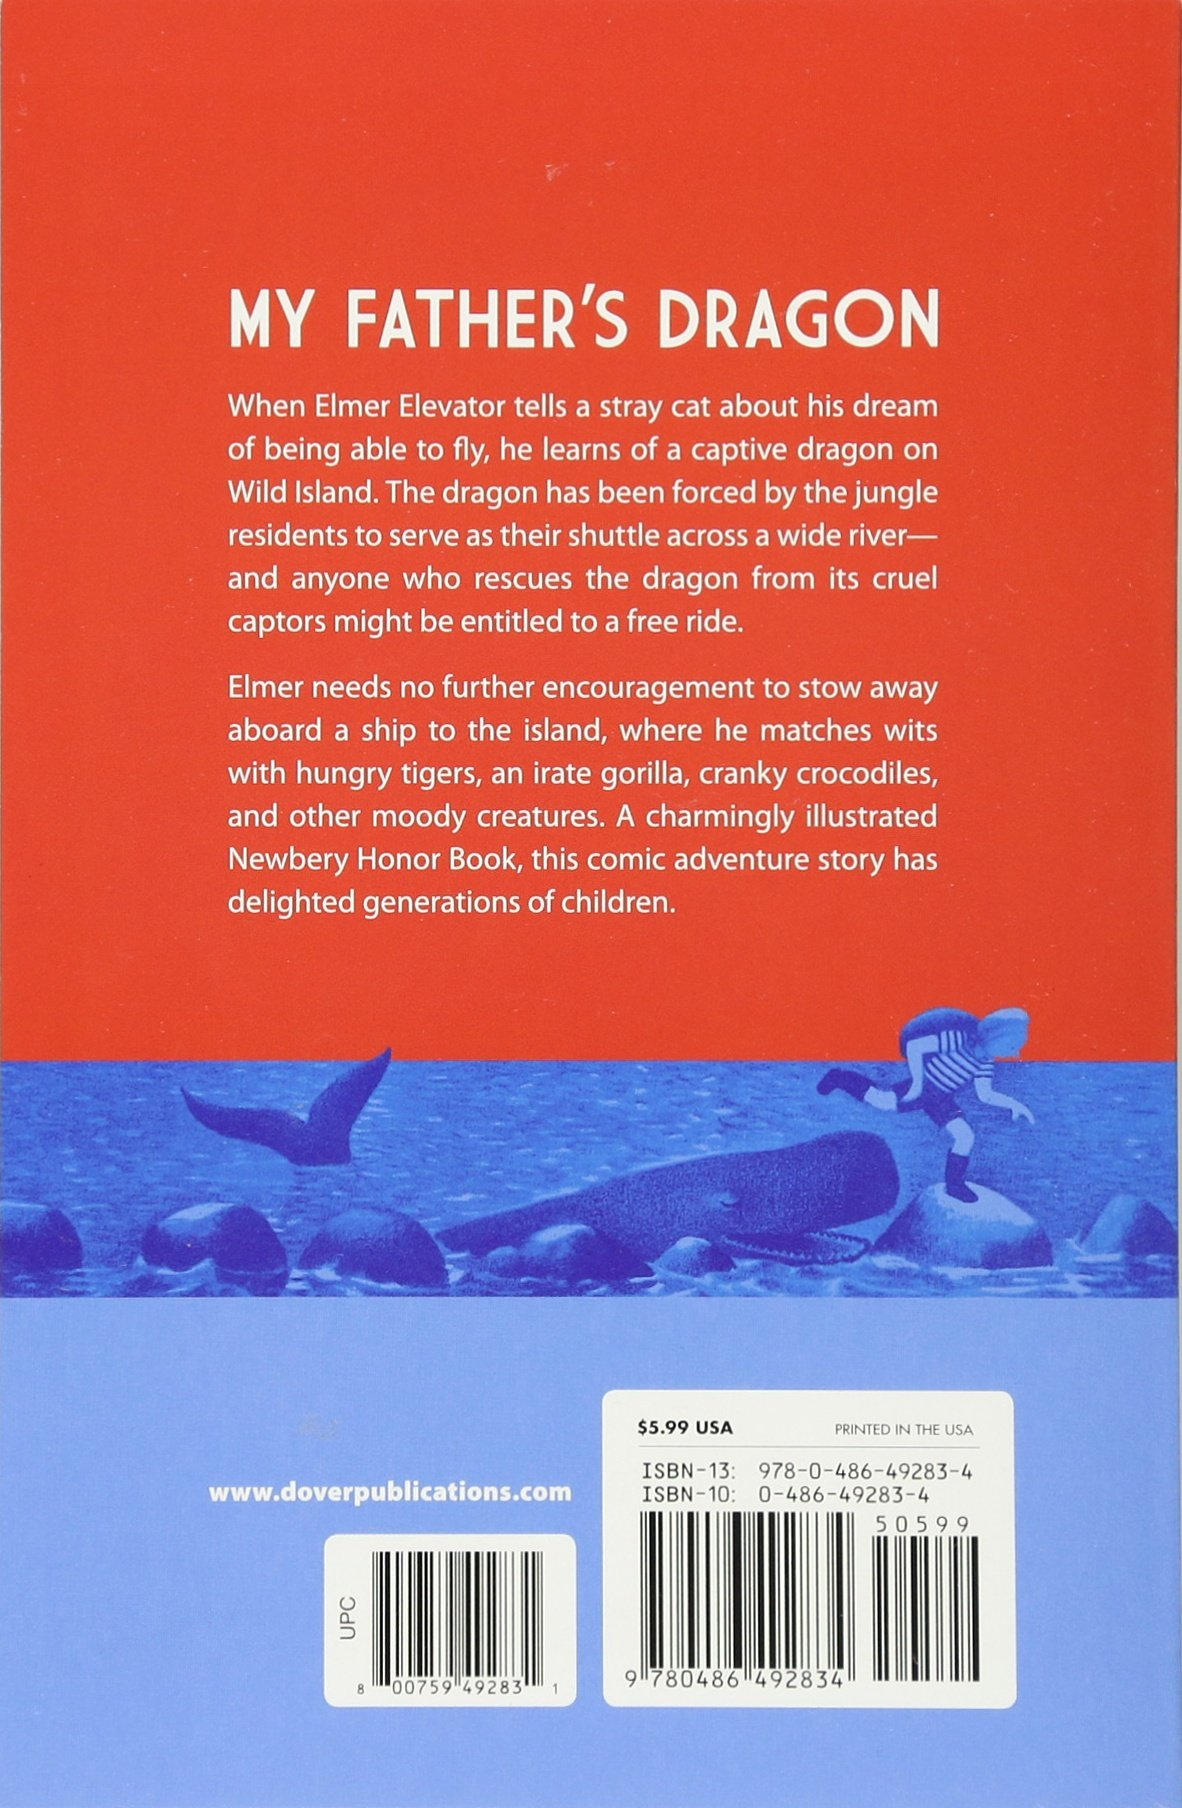 My fathers dragon ruth stiles gannett ruth chrisman gannett my fathers dragon ruth stiles gannett ruth chrisman gannett 9780486492834 amazon books fandeluxe Image collections